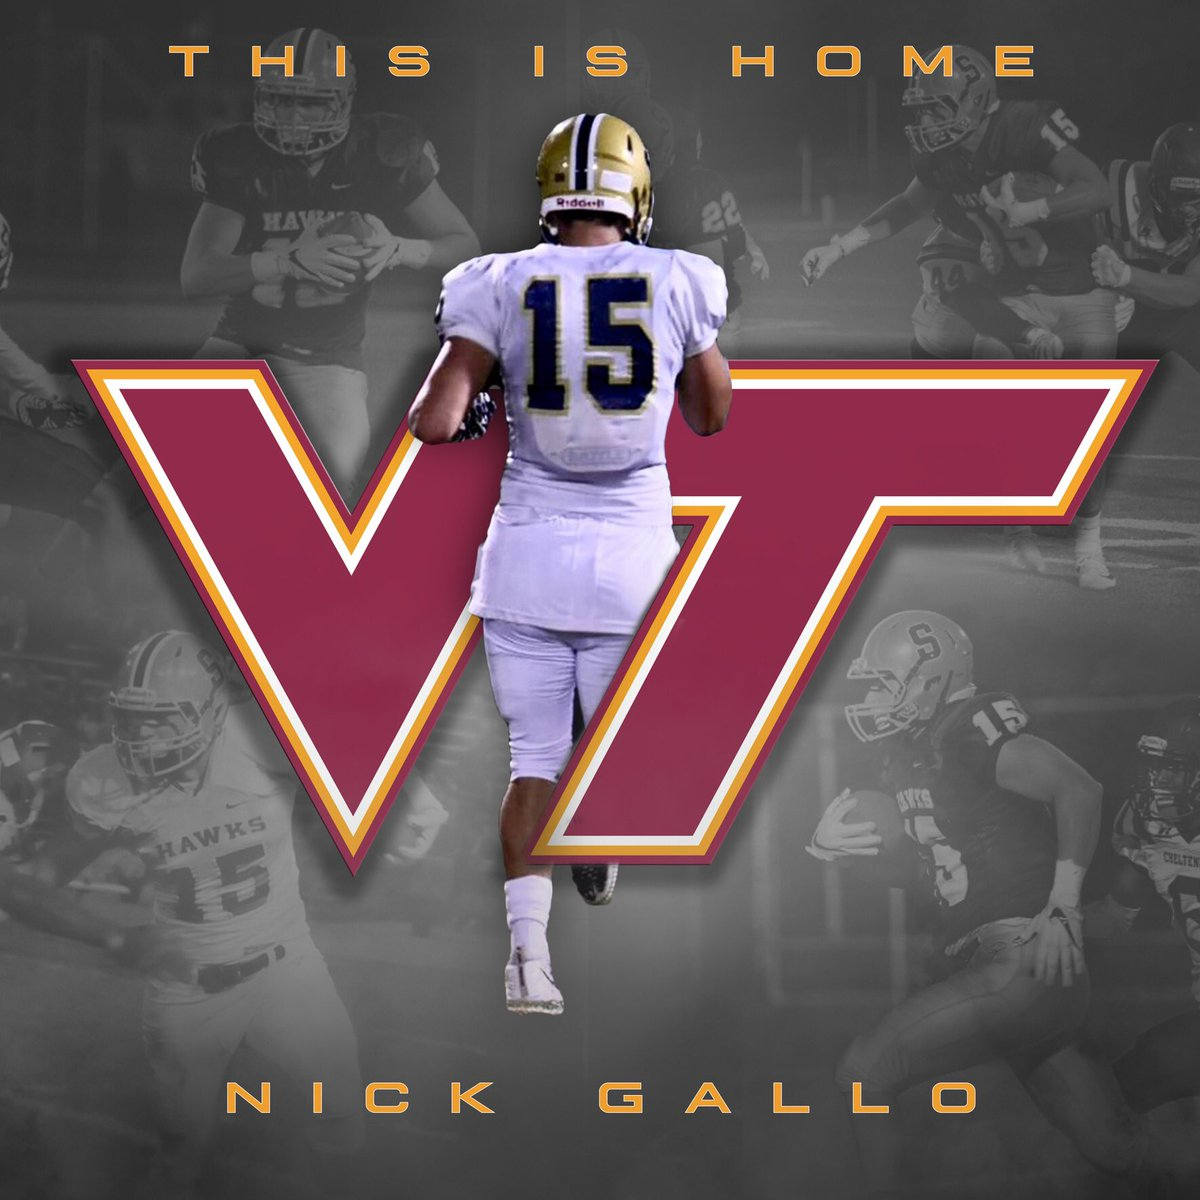 Nick Gallo